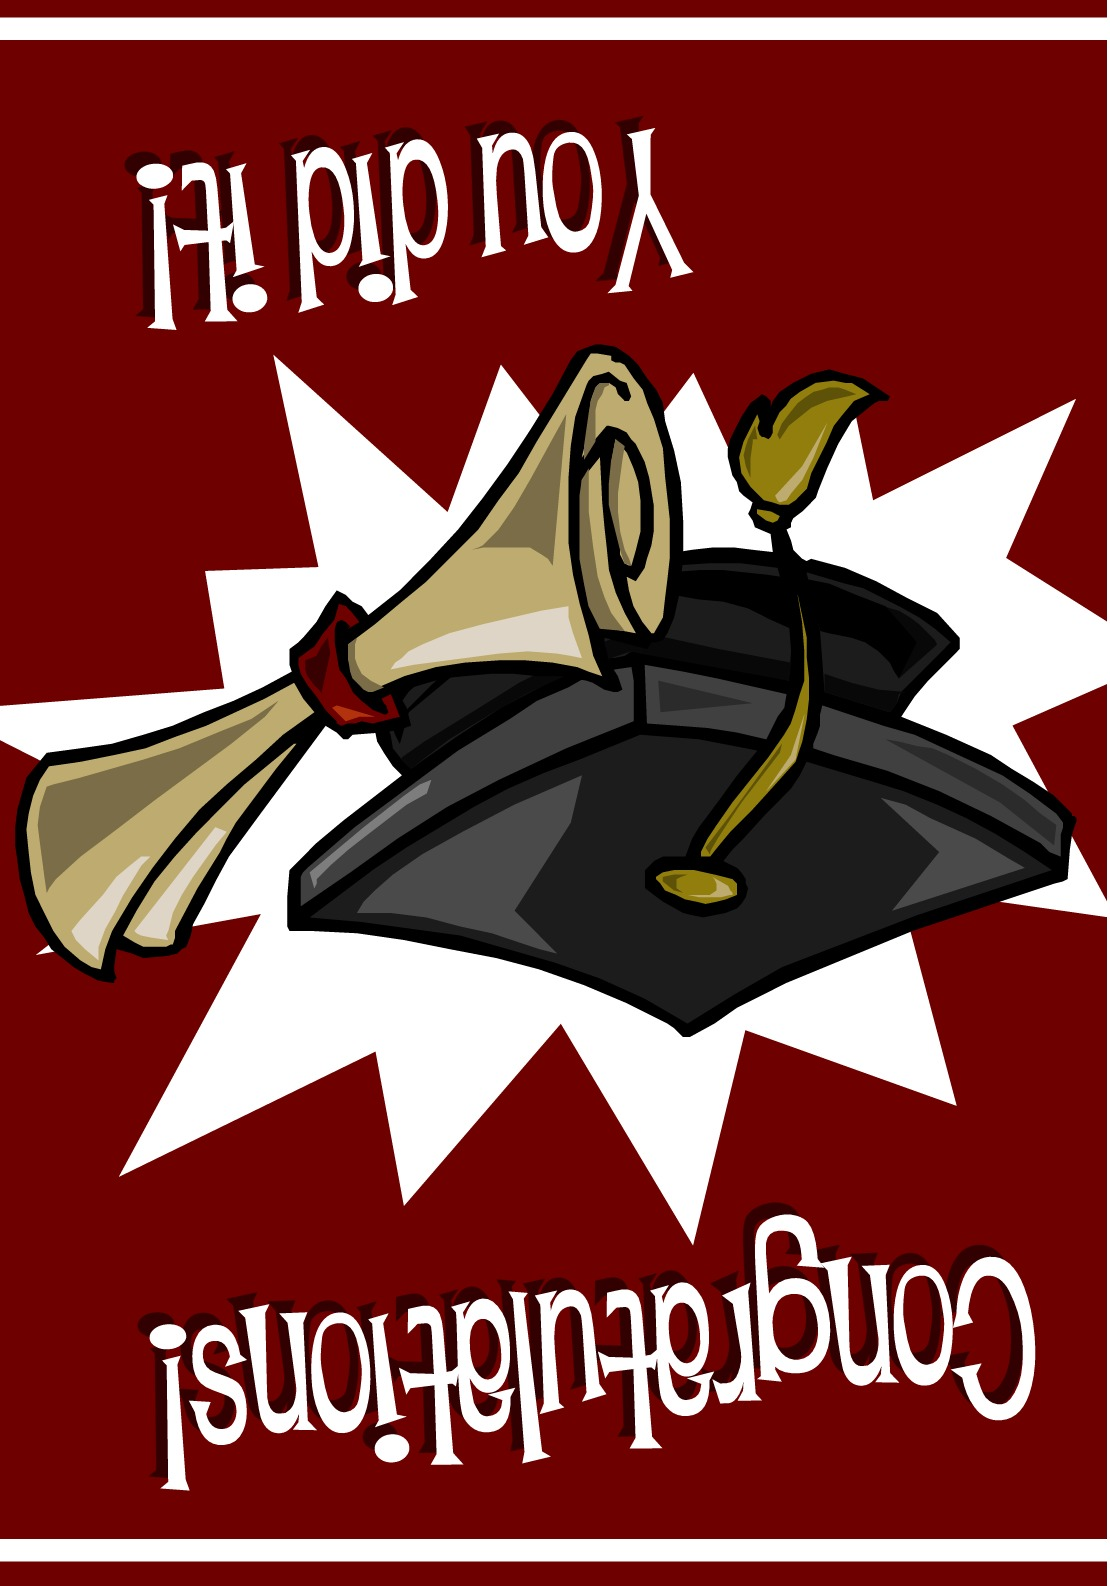 Graduation Cards Templates Graduation Cap And Gown Photo For Cards